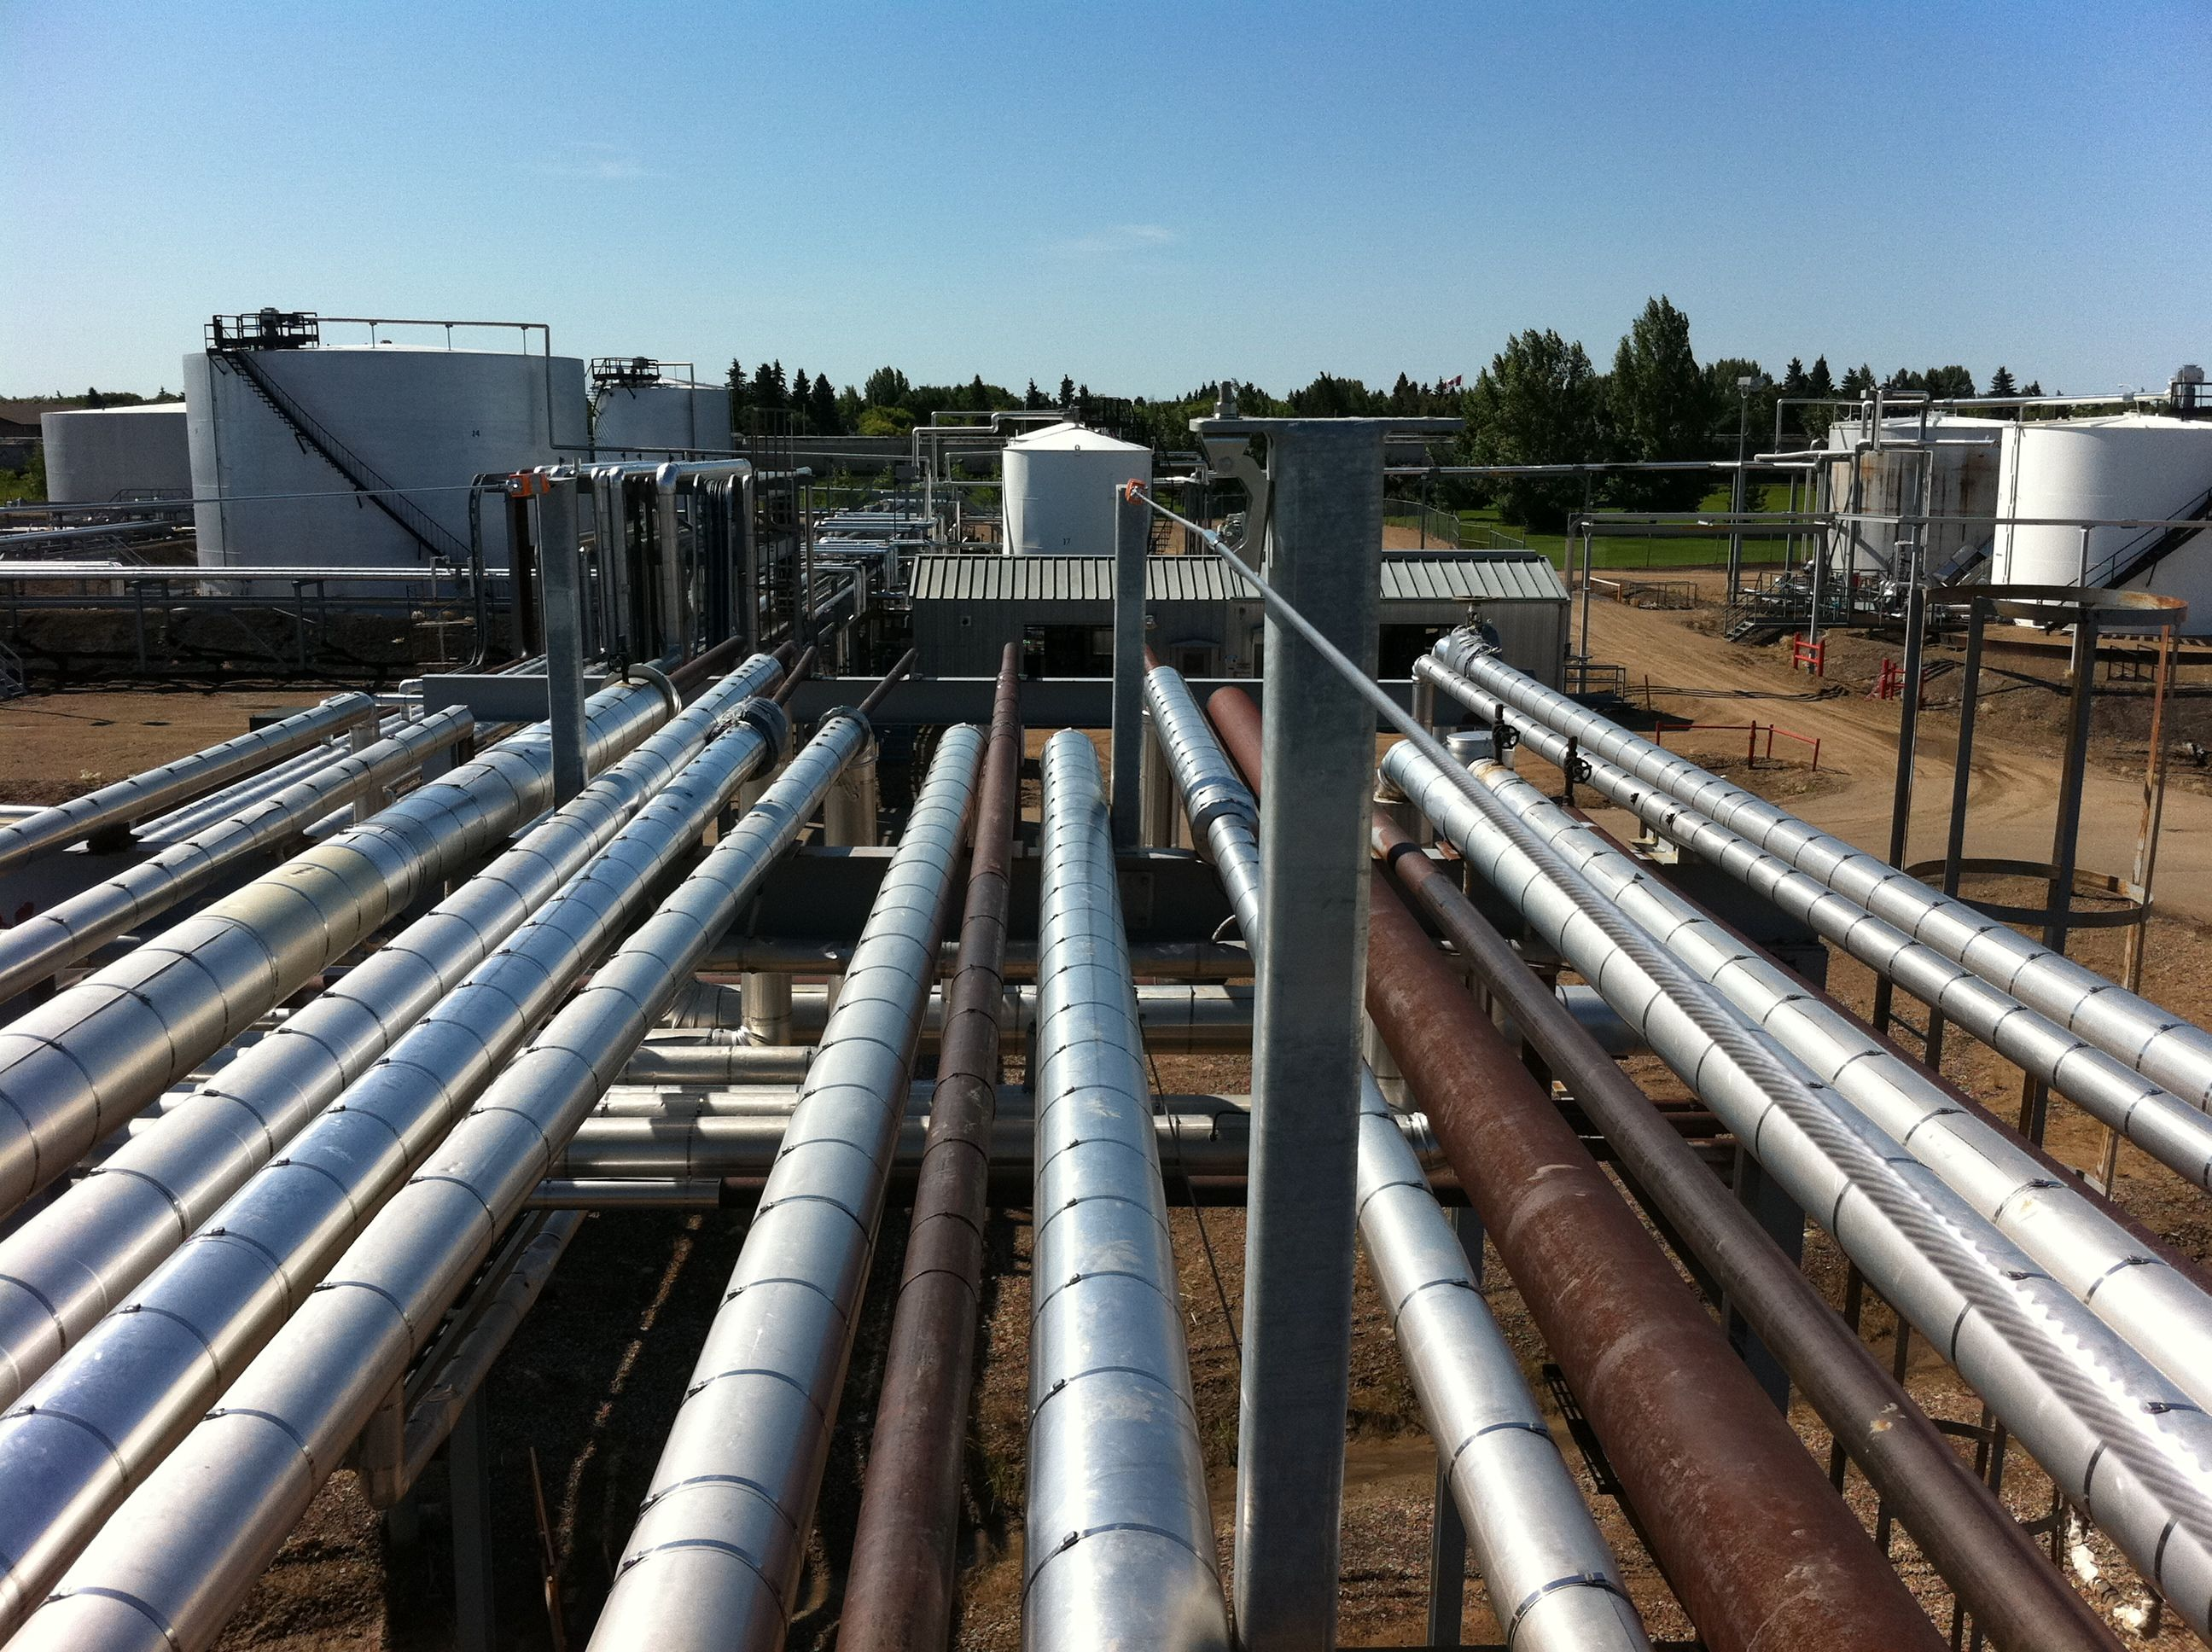 pipe oil sands racks on practice periodical doi rack of petrochemical structural vol construction design used abs rational no and for facilities